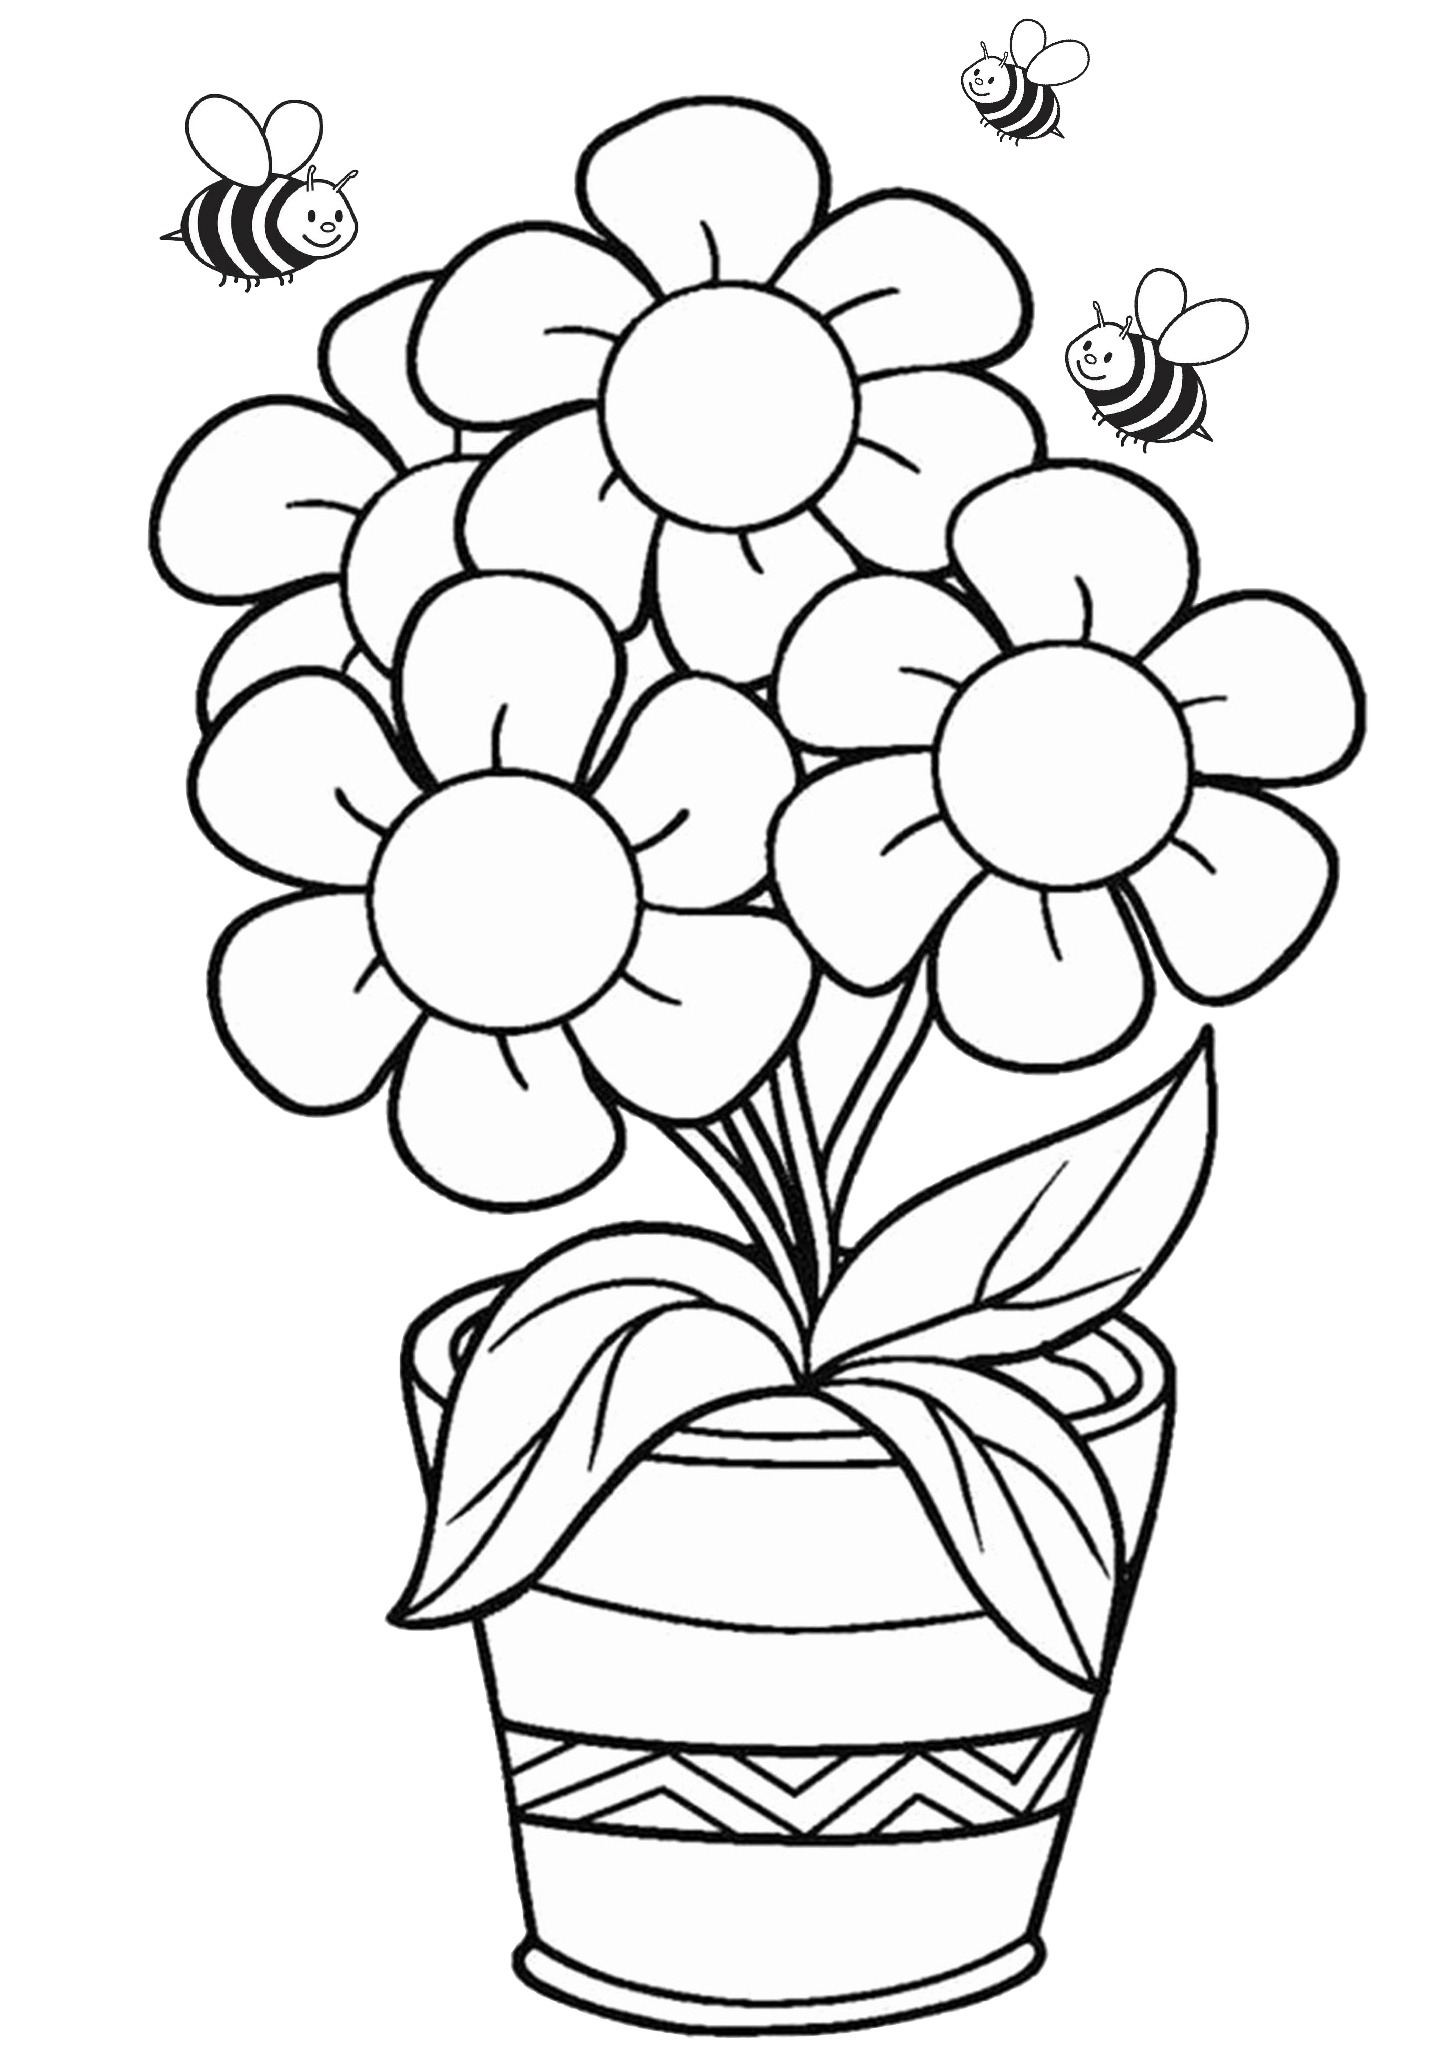 36 Printable Flower Coloring Pages for Adults & Kids ...